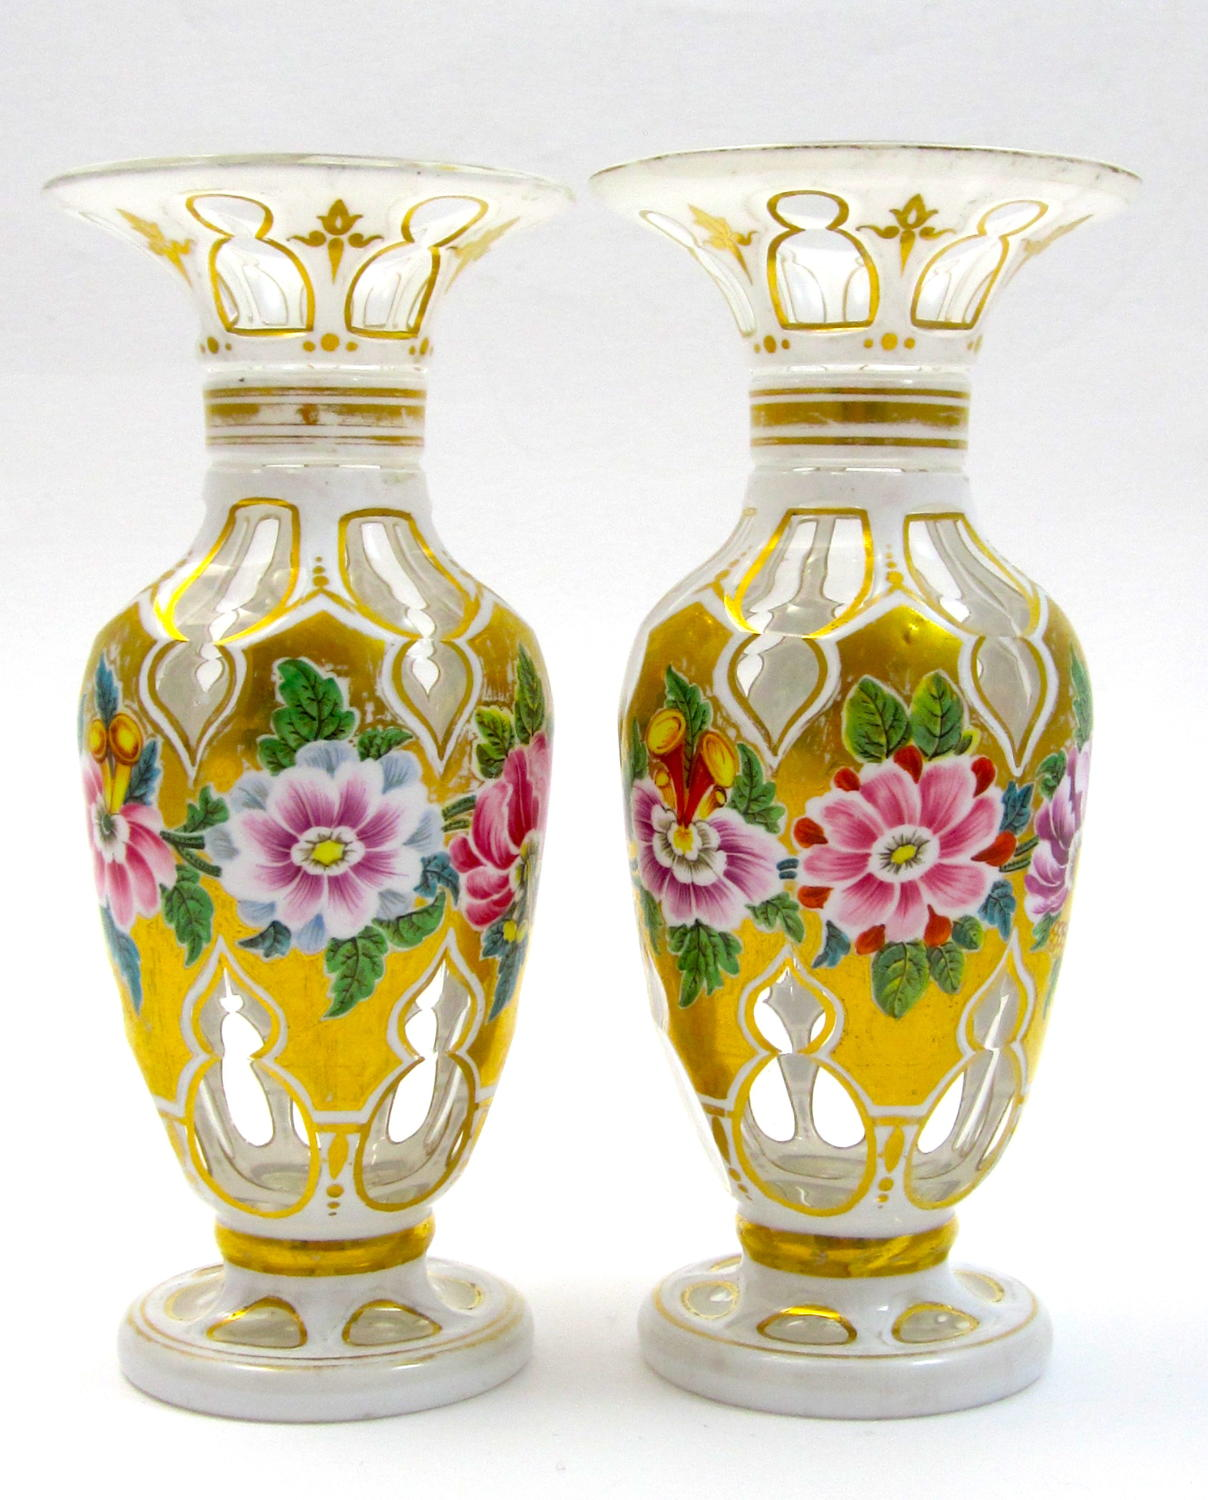 A Superb Miniature Pair of Bohemian Overlay Vases with Flowers